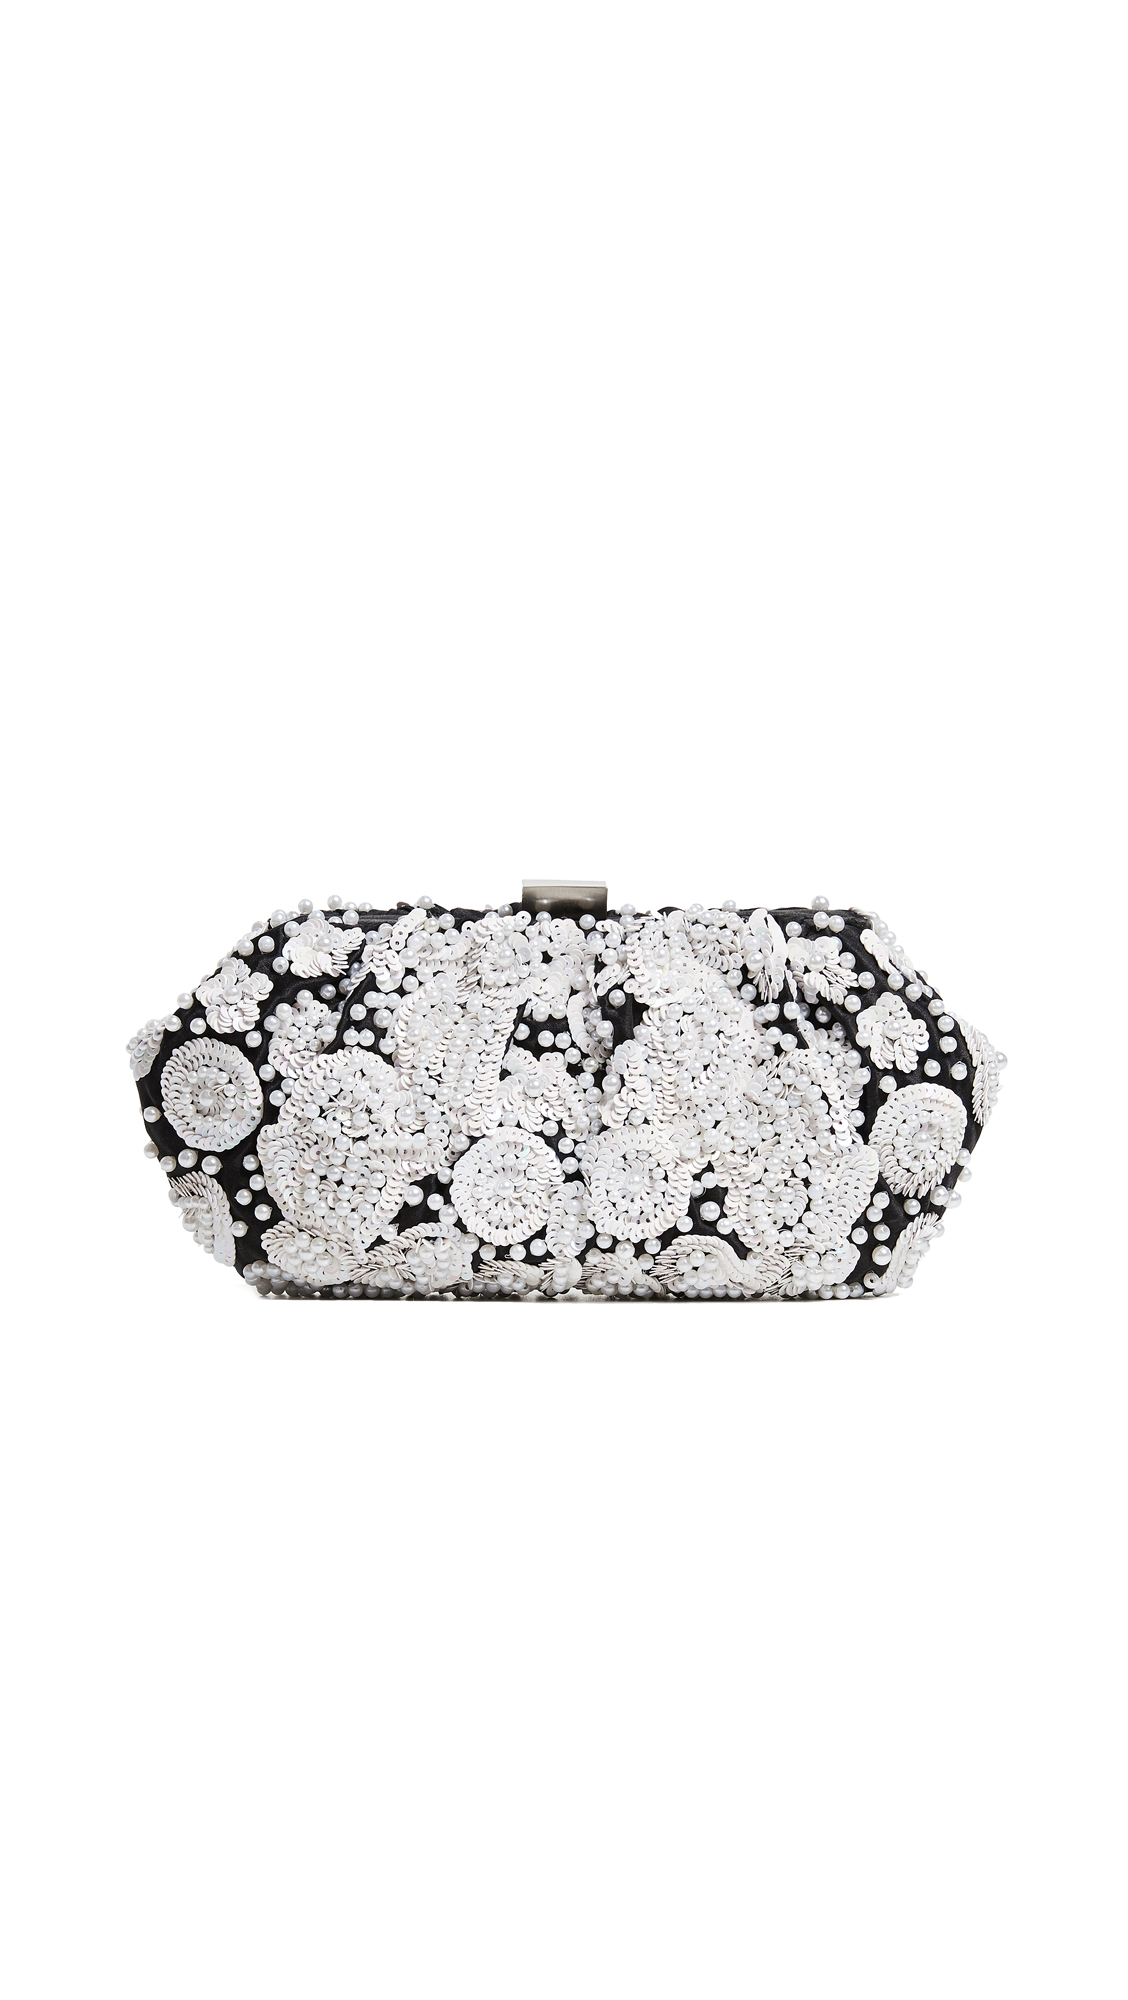 Santi Floral Beaded Clutch In Black/White